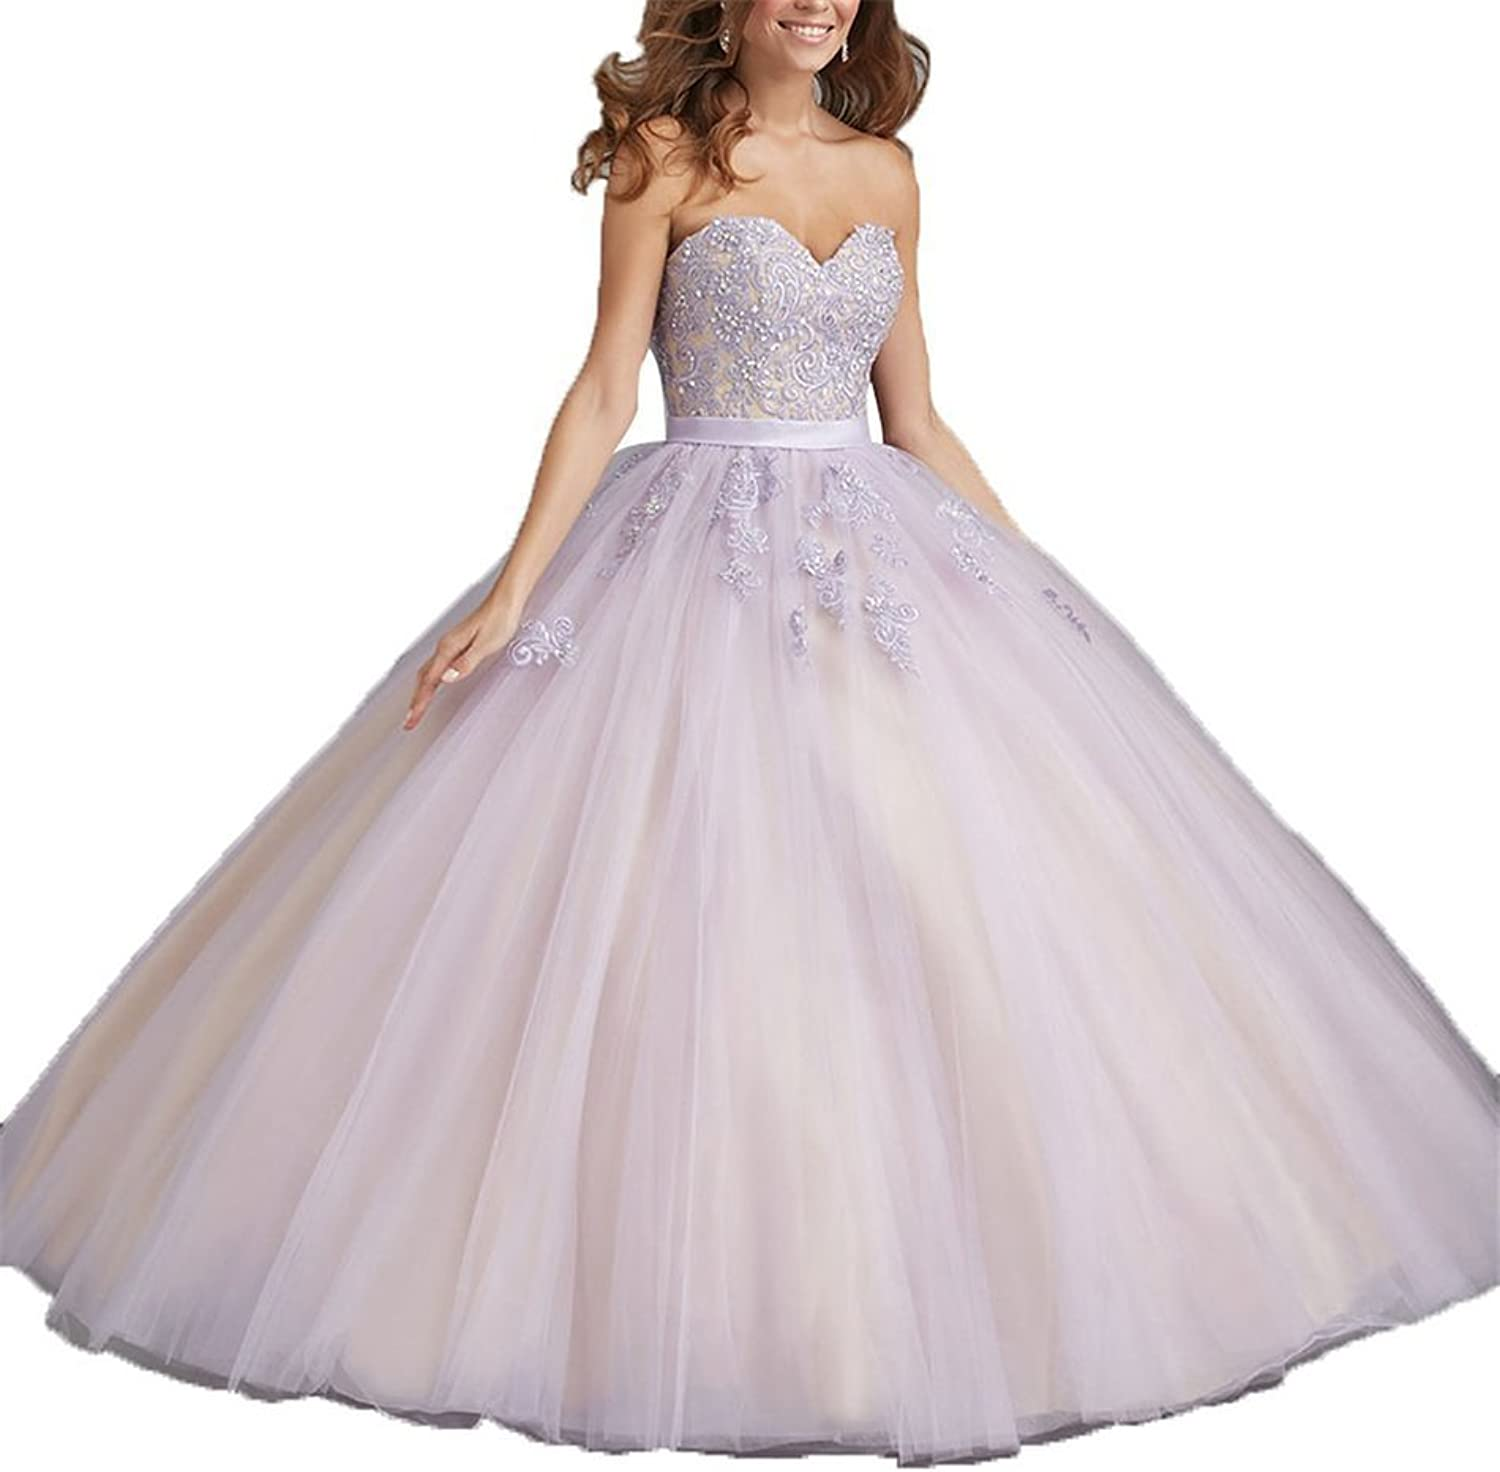 HSDJ Women's Lace Appliques Sweet 16 Prom Ball Gowns Birthday Quinceanera Dresses